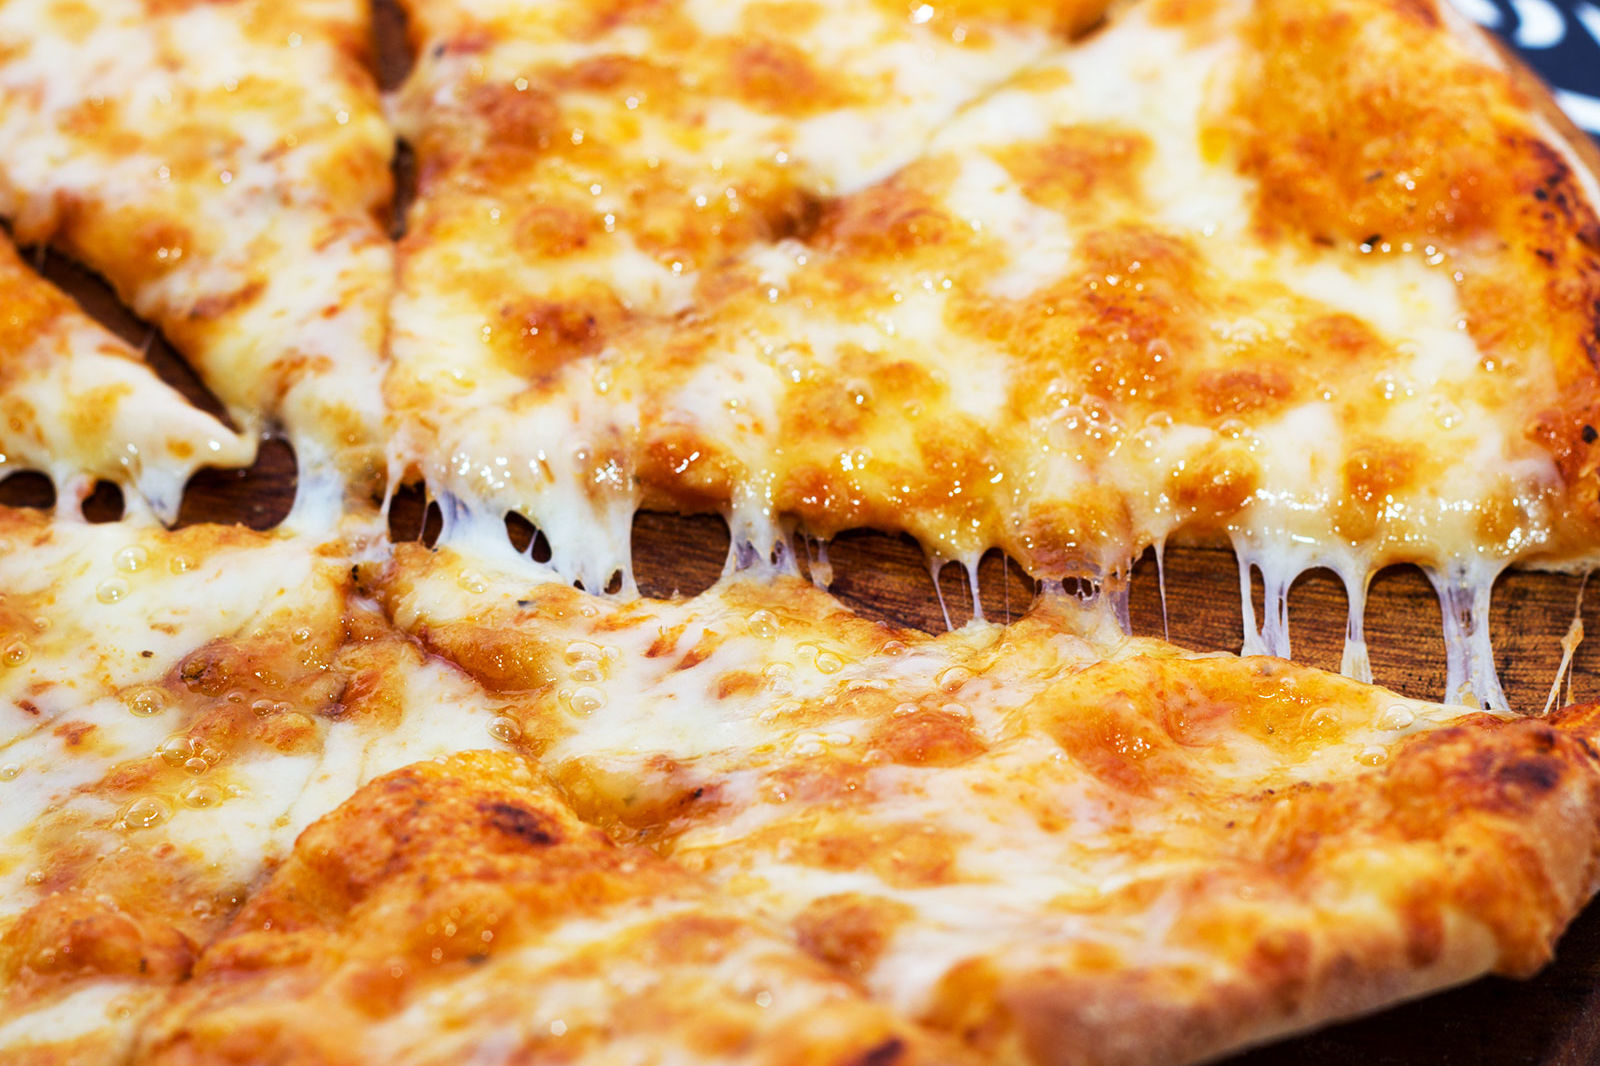 Ordered an Extra Cheese Pizza? Here's How Much You Actually Get, According to Reddit